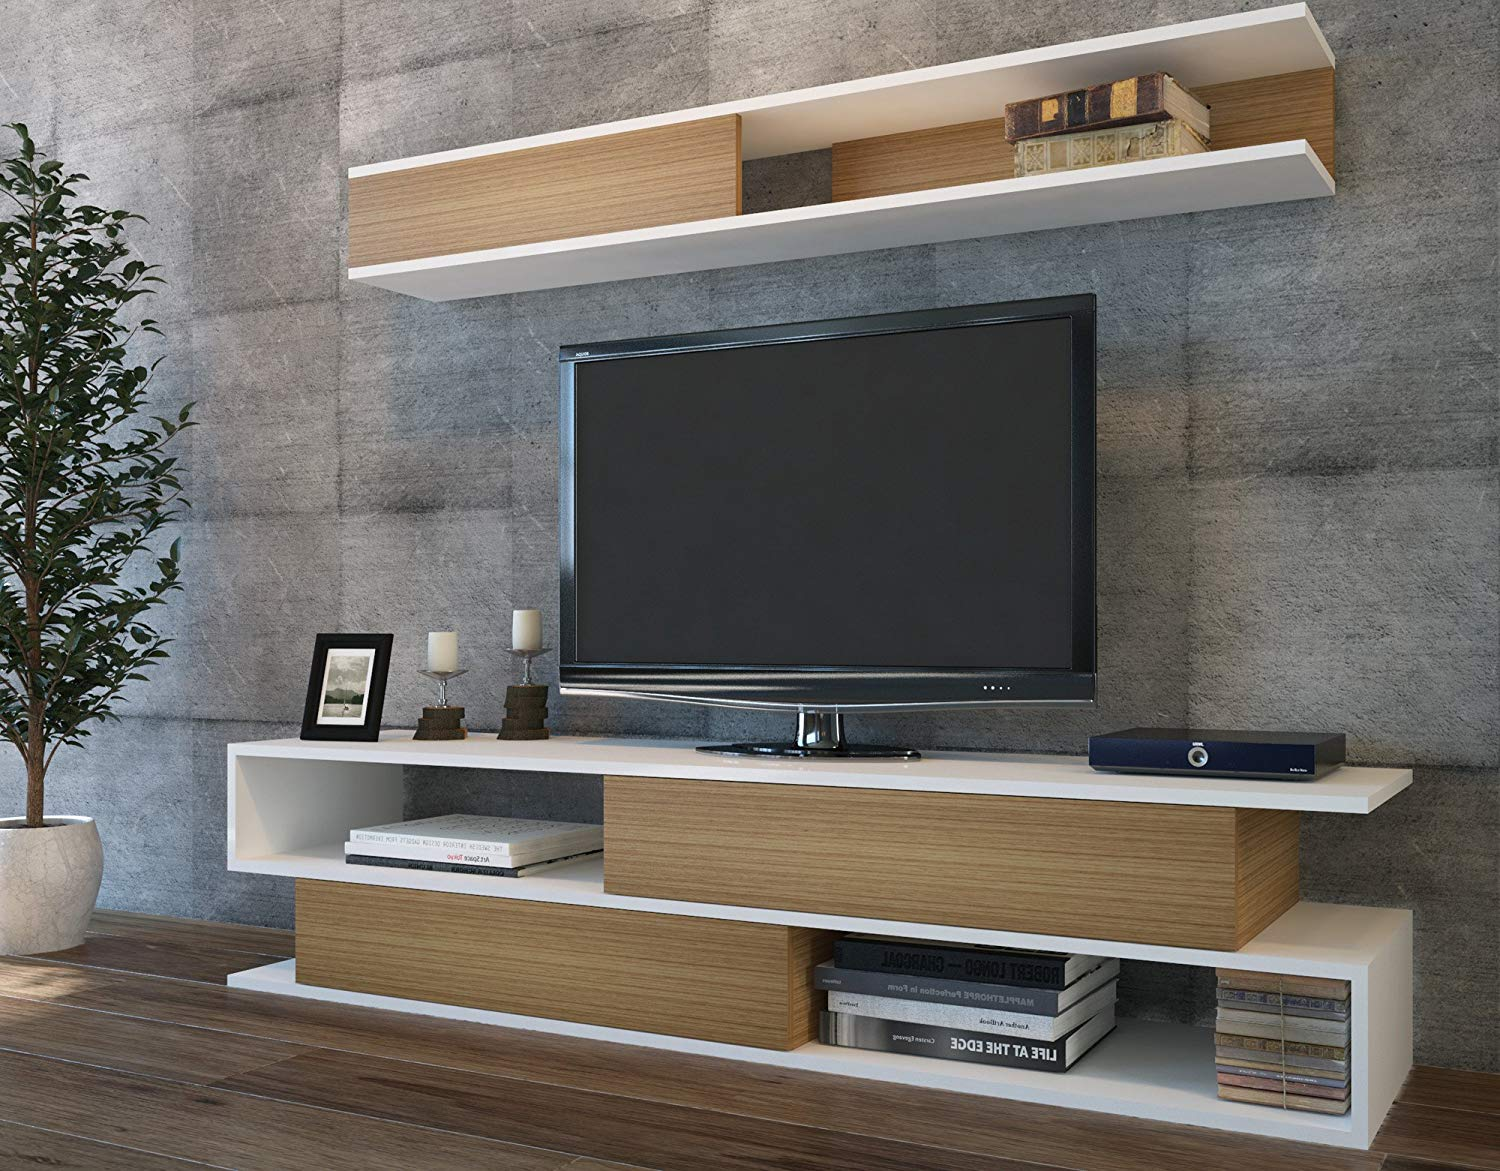 Gentil Get Quotations · LaModaHome Tv Stand Unit   Brown White Modern Living Room  Functional Elegant Stand Storage Multi Function